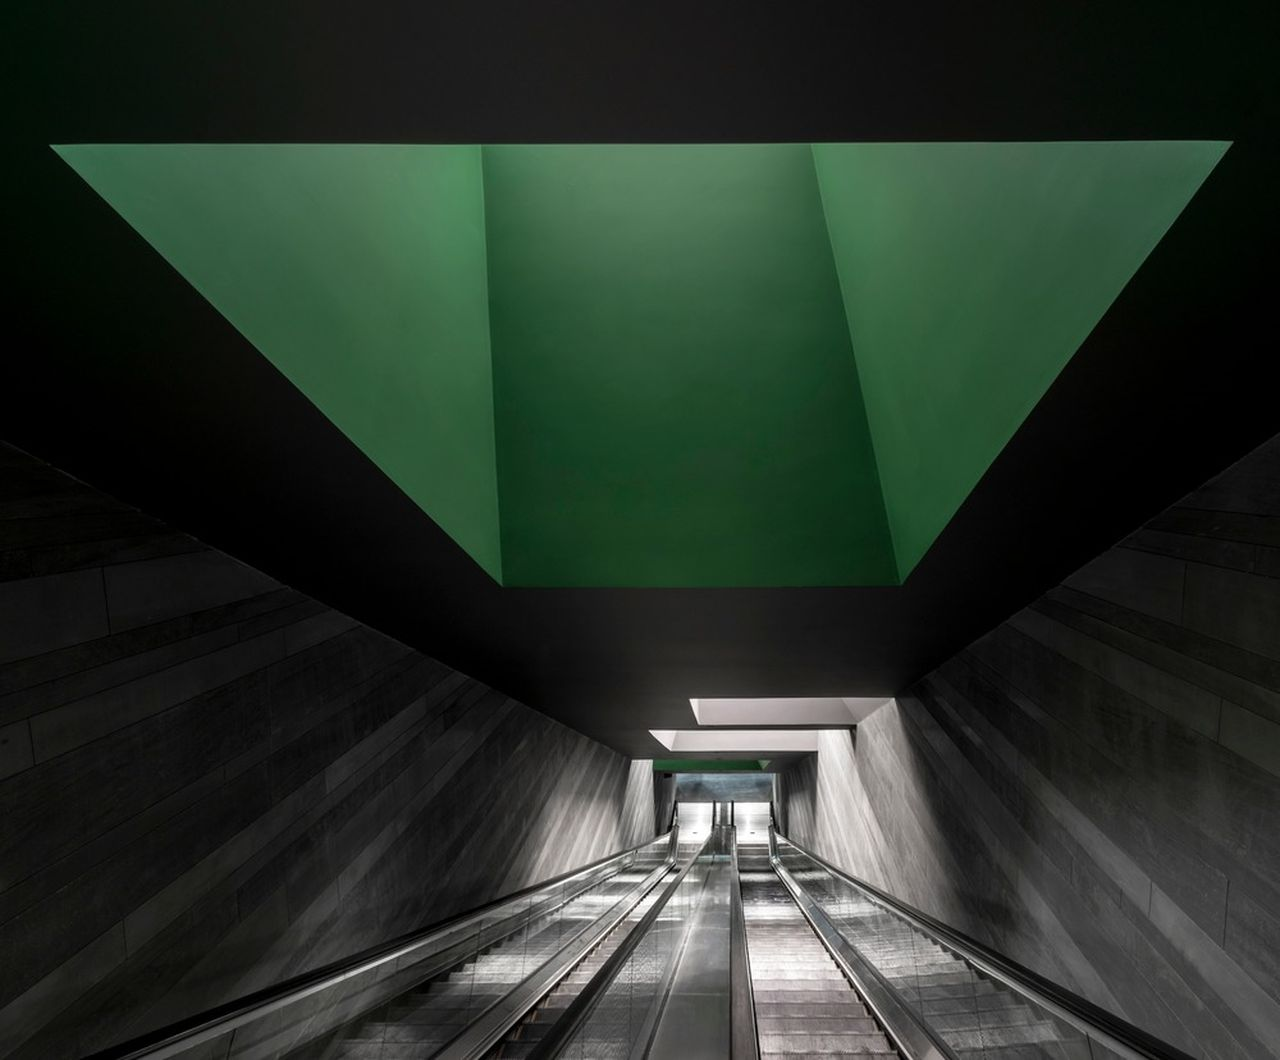 The HUB Performance and Exhibition Center Escalator Tunnel : Photo credit © Dirk Weiblen